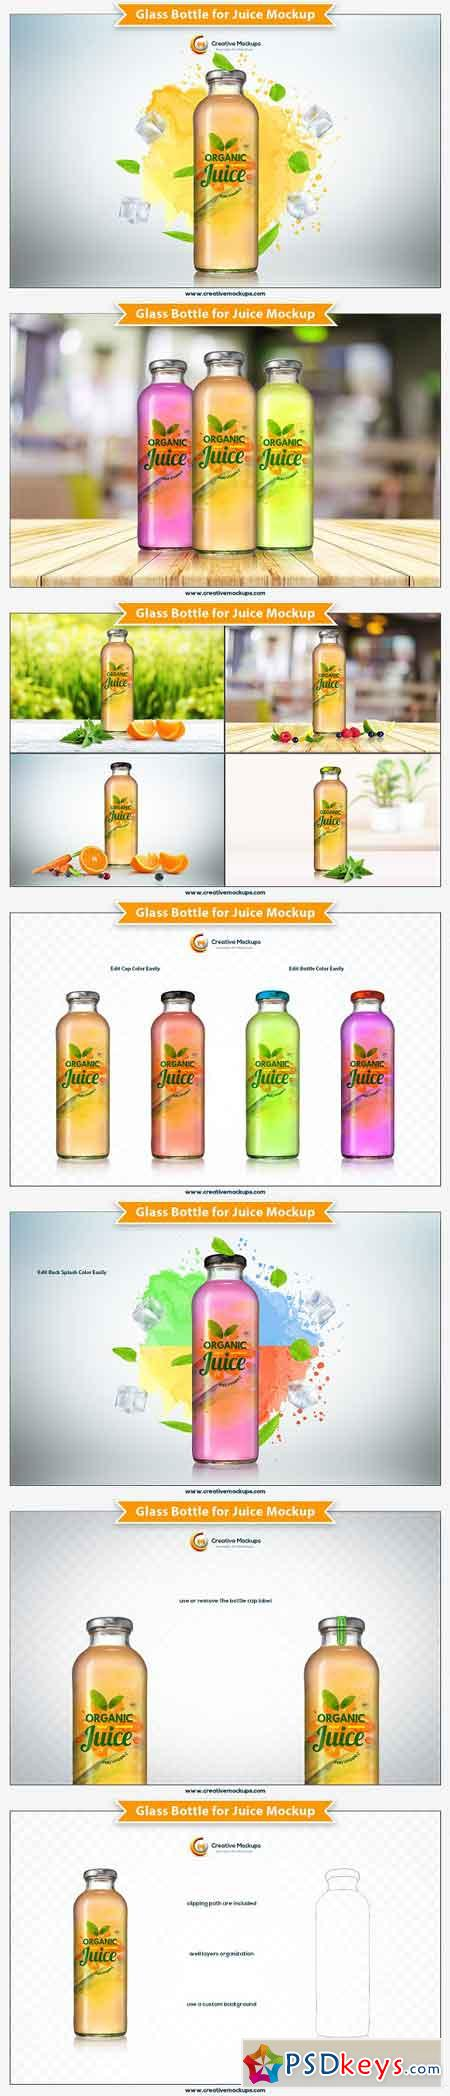 Glass Bottle for Juice Mockup 2941755